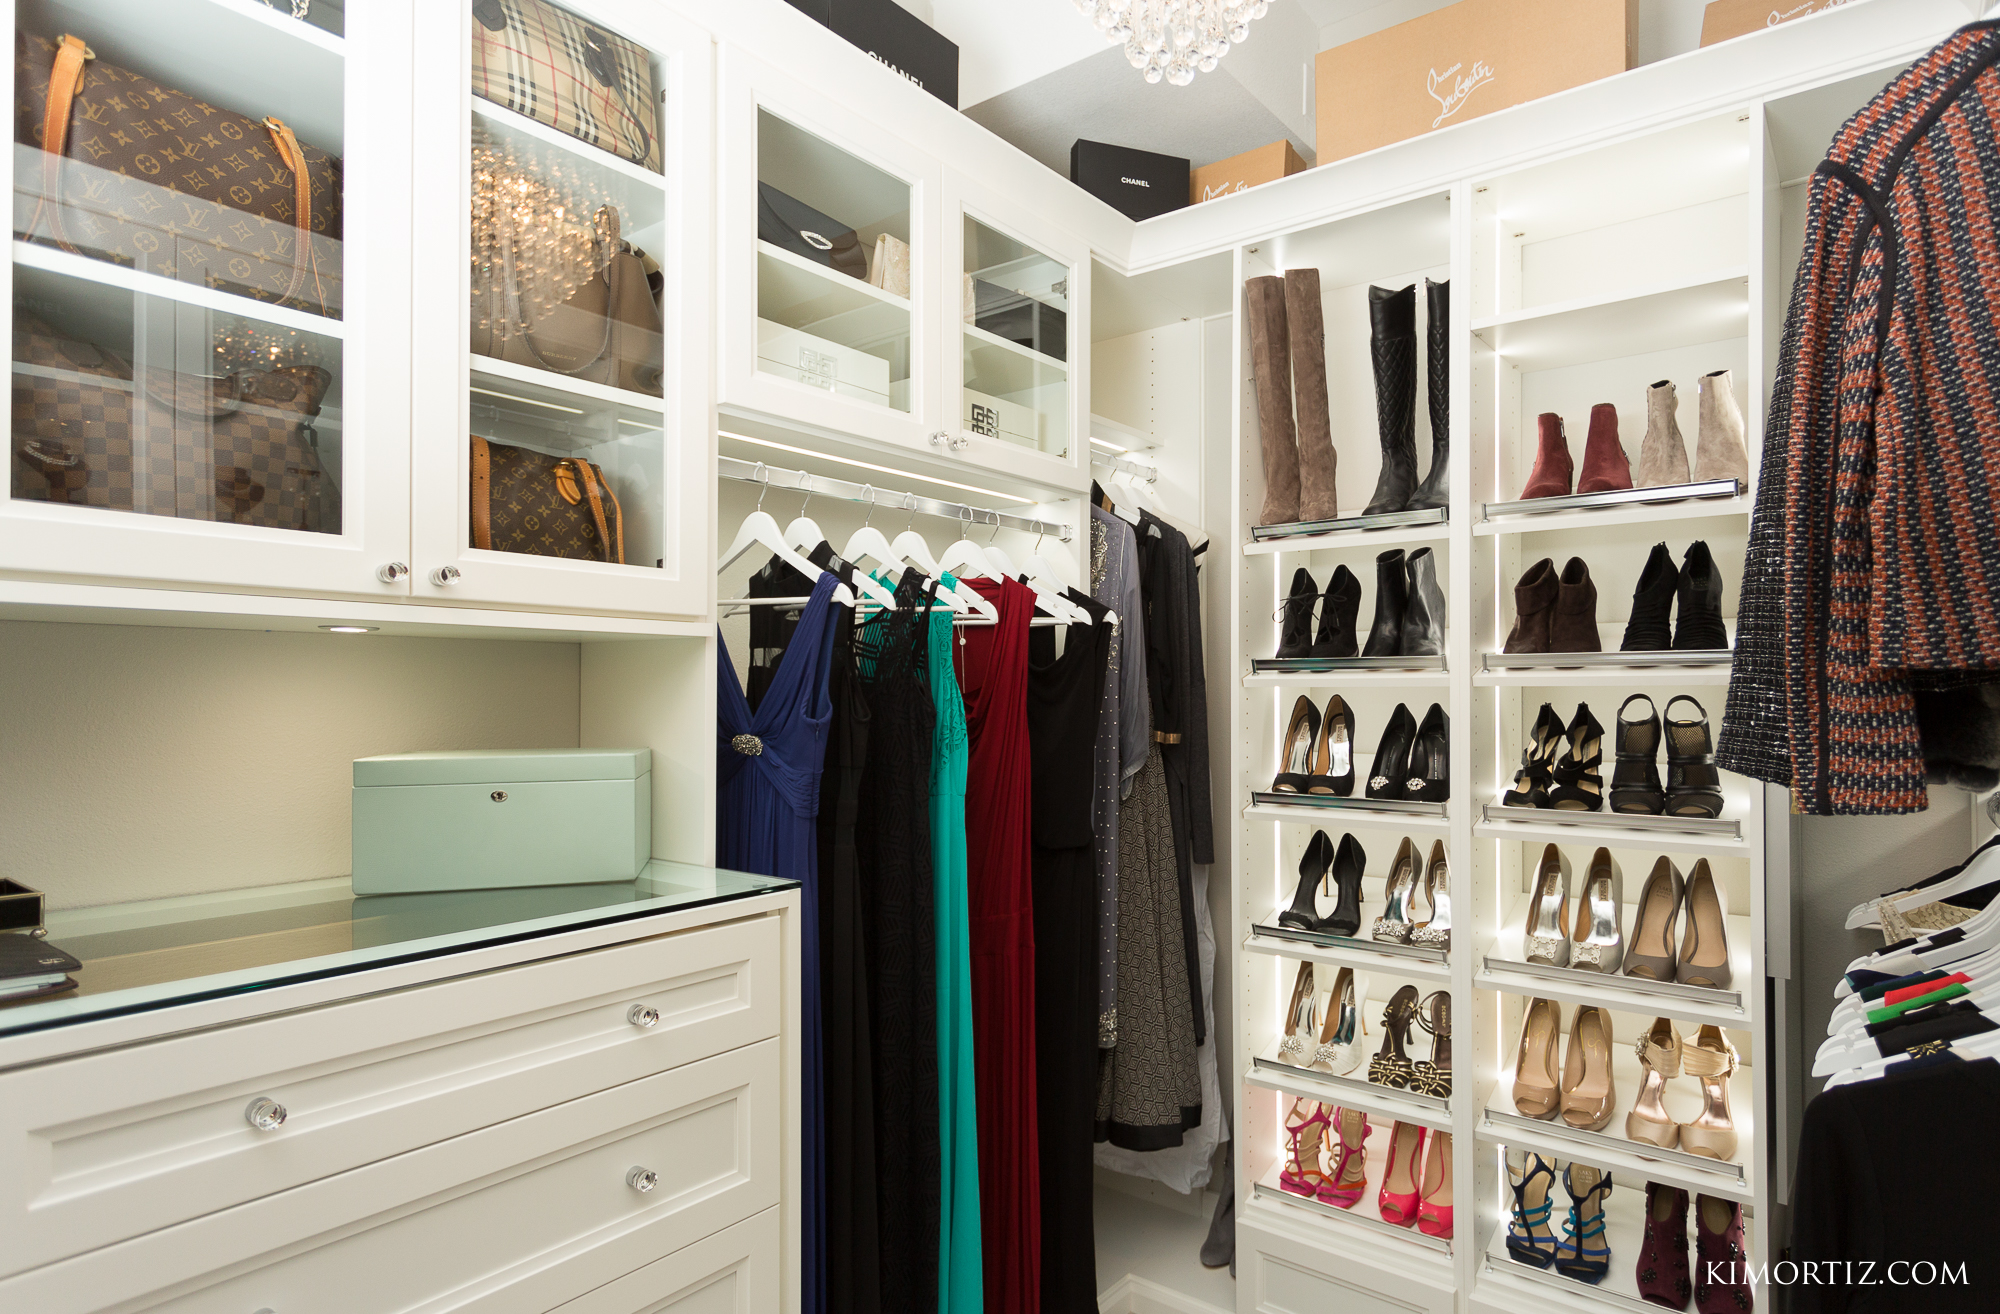 Good Closet Envy The New Name In Luxury Fear Of Opening Closets 25 Ridiculously  Unreasonable Fears